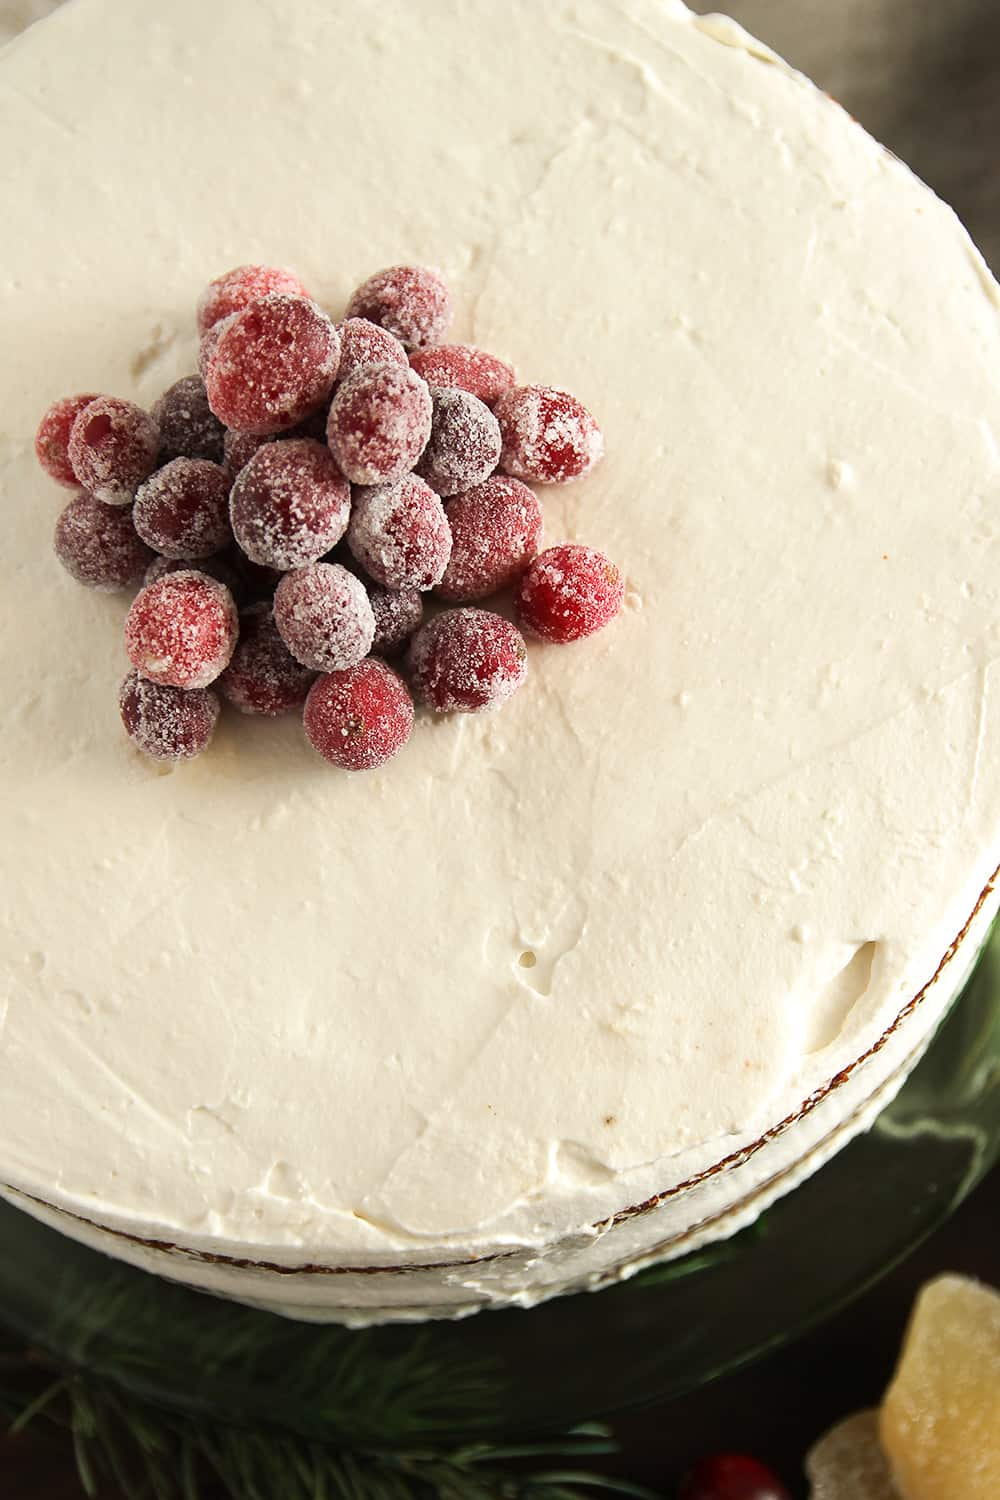 Sugared Cranberries add a festive touch to any holiday baked good, especially Gingerbread Layer Cake